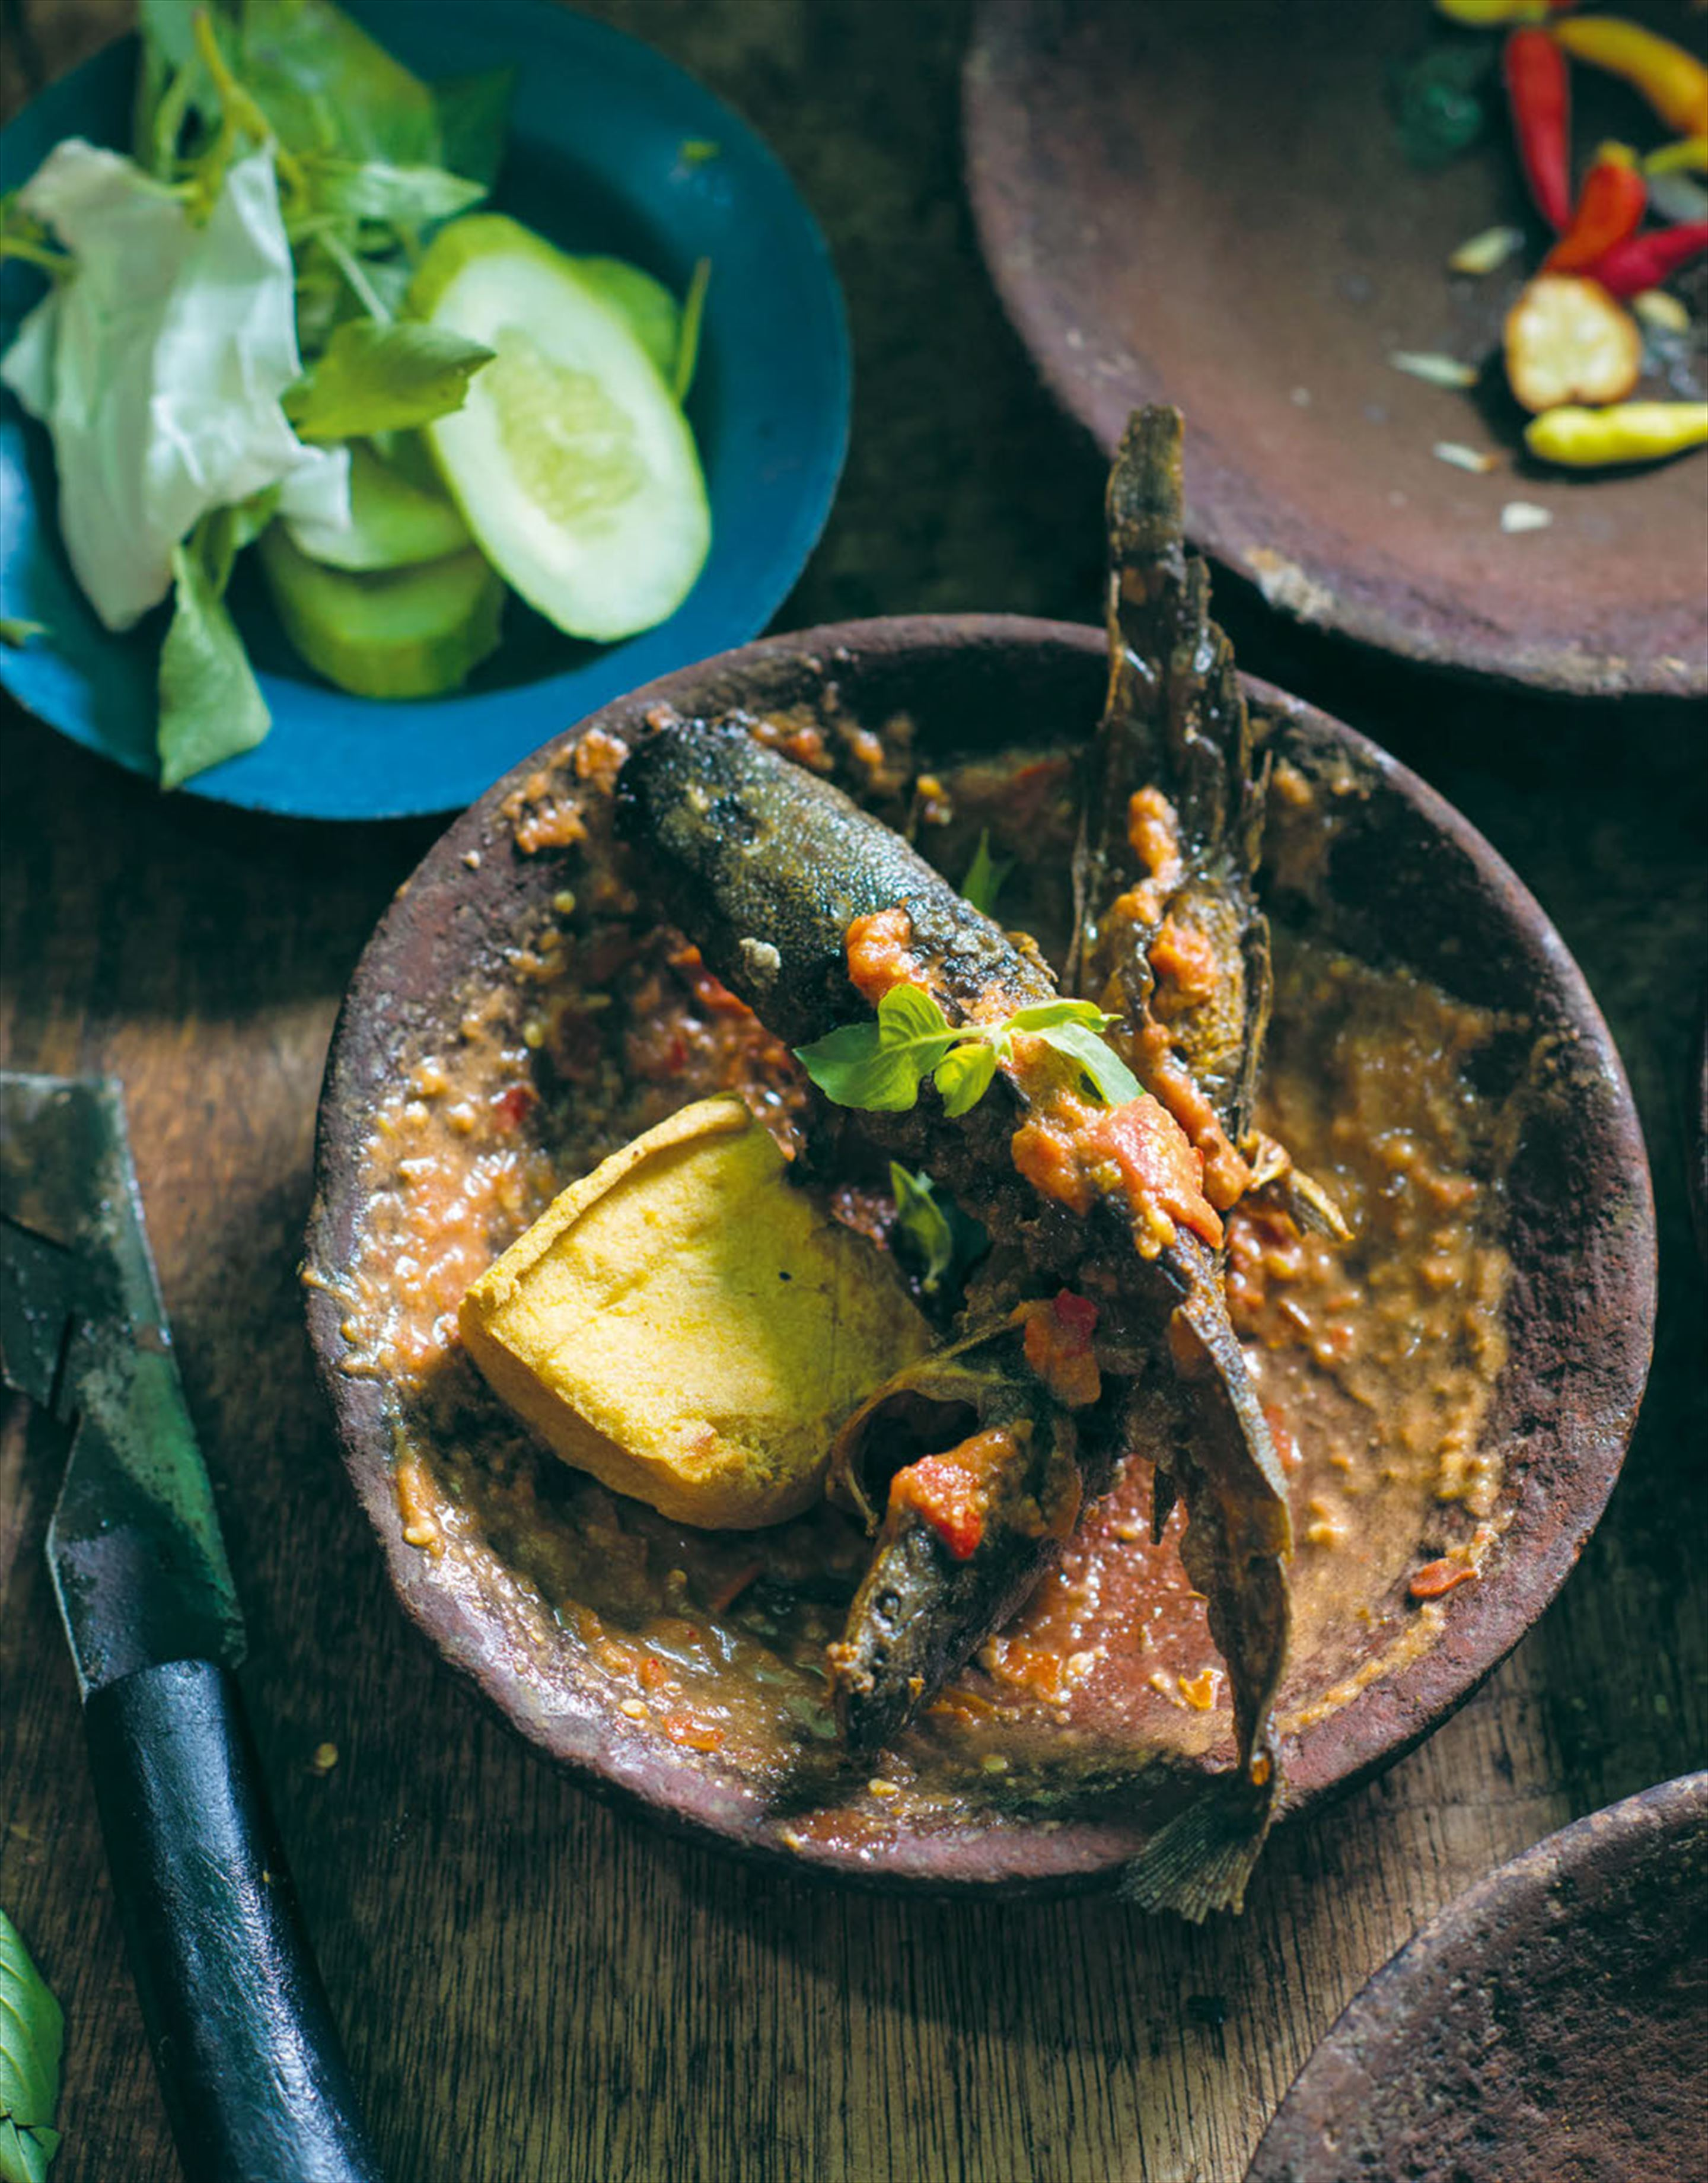 Deep - fried whole fish & tofu with tomato sambal